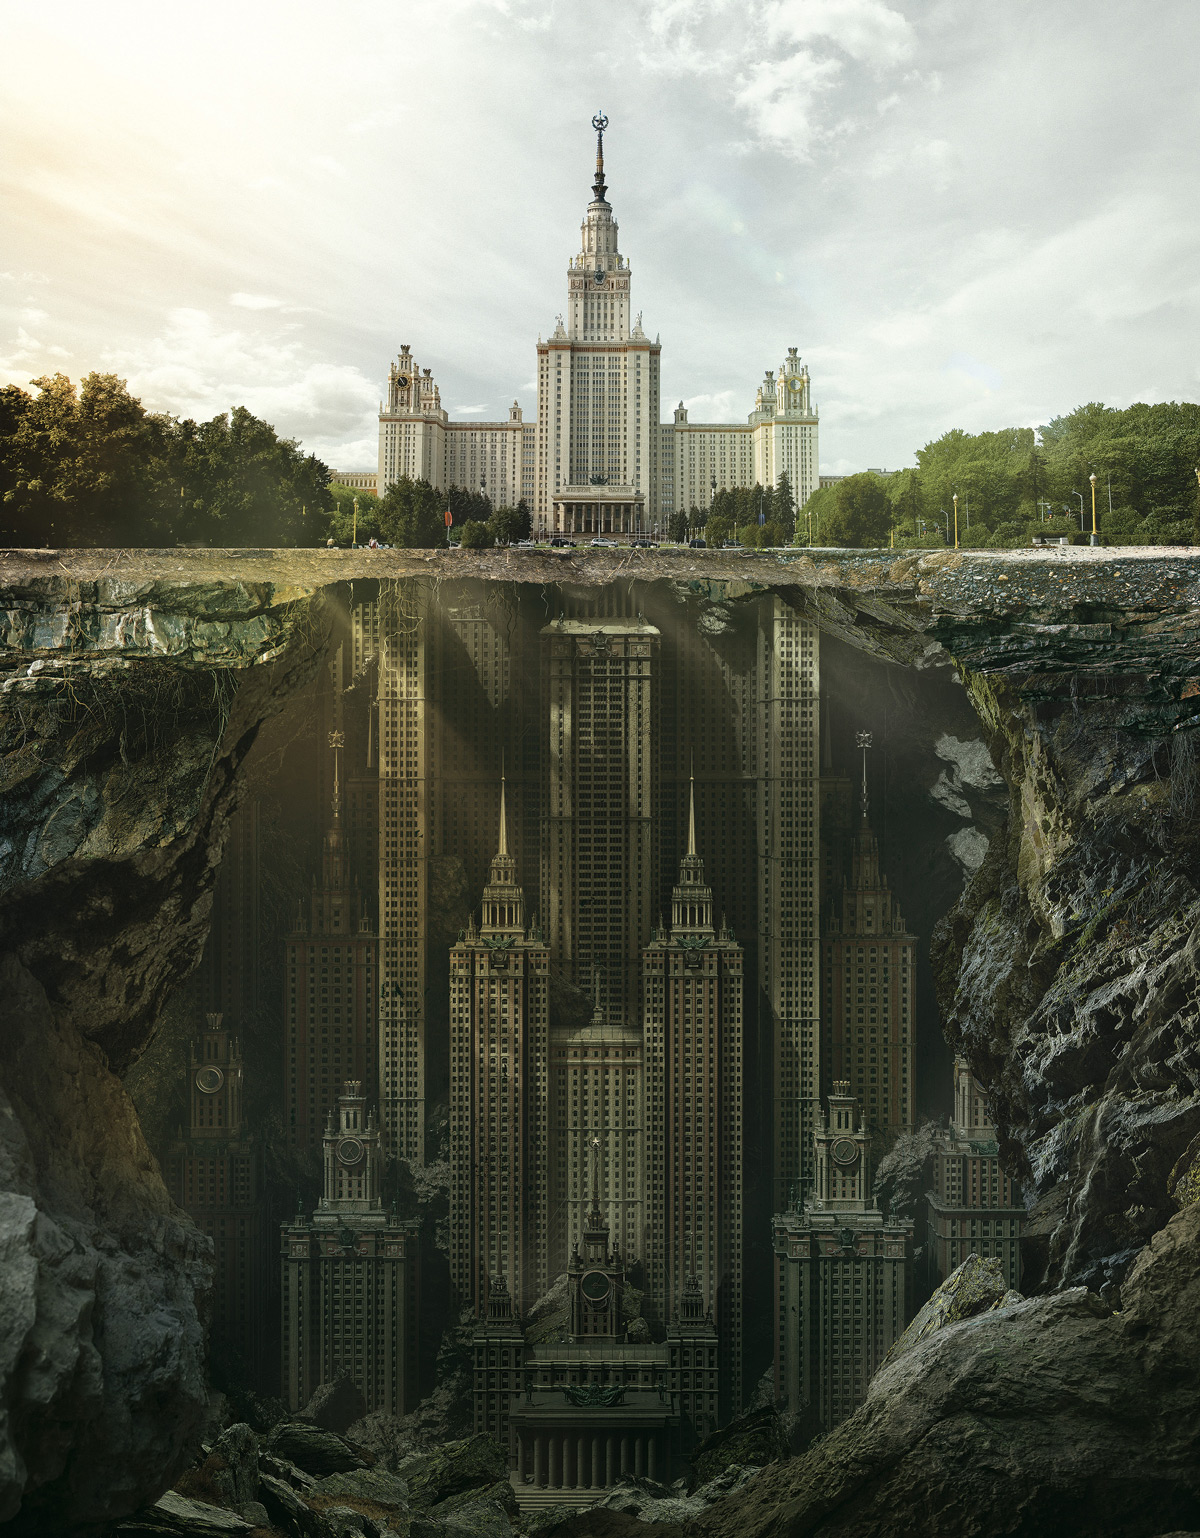 Moscow State University Fantasy Architecture - Fantastic reimagination of iconic russian architectural landmarks by carioca studio